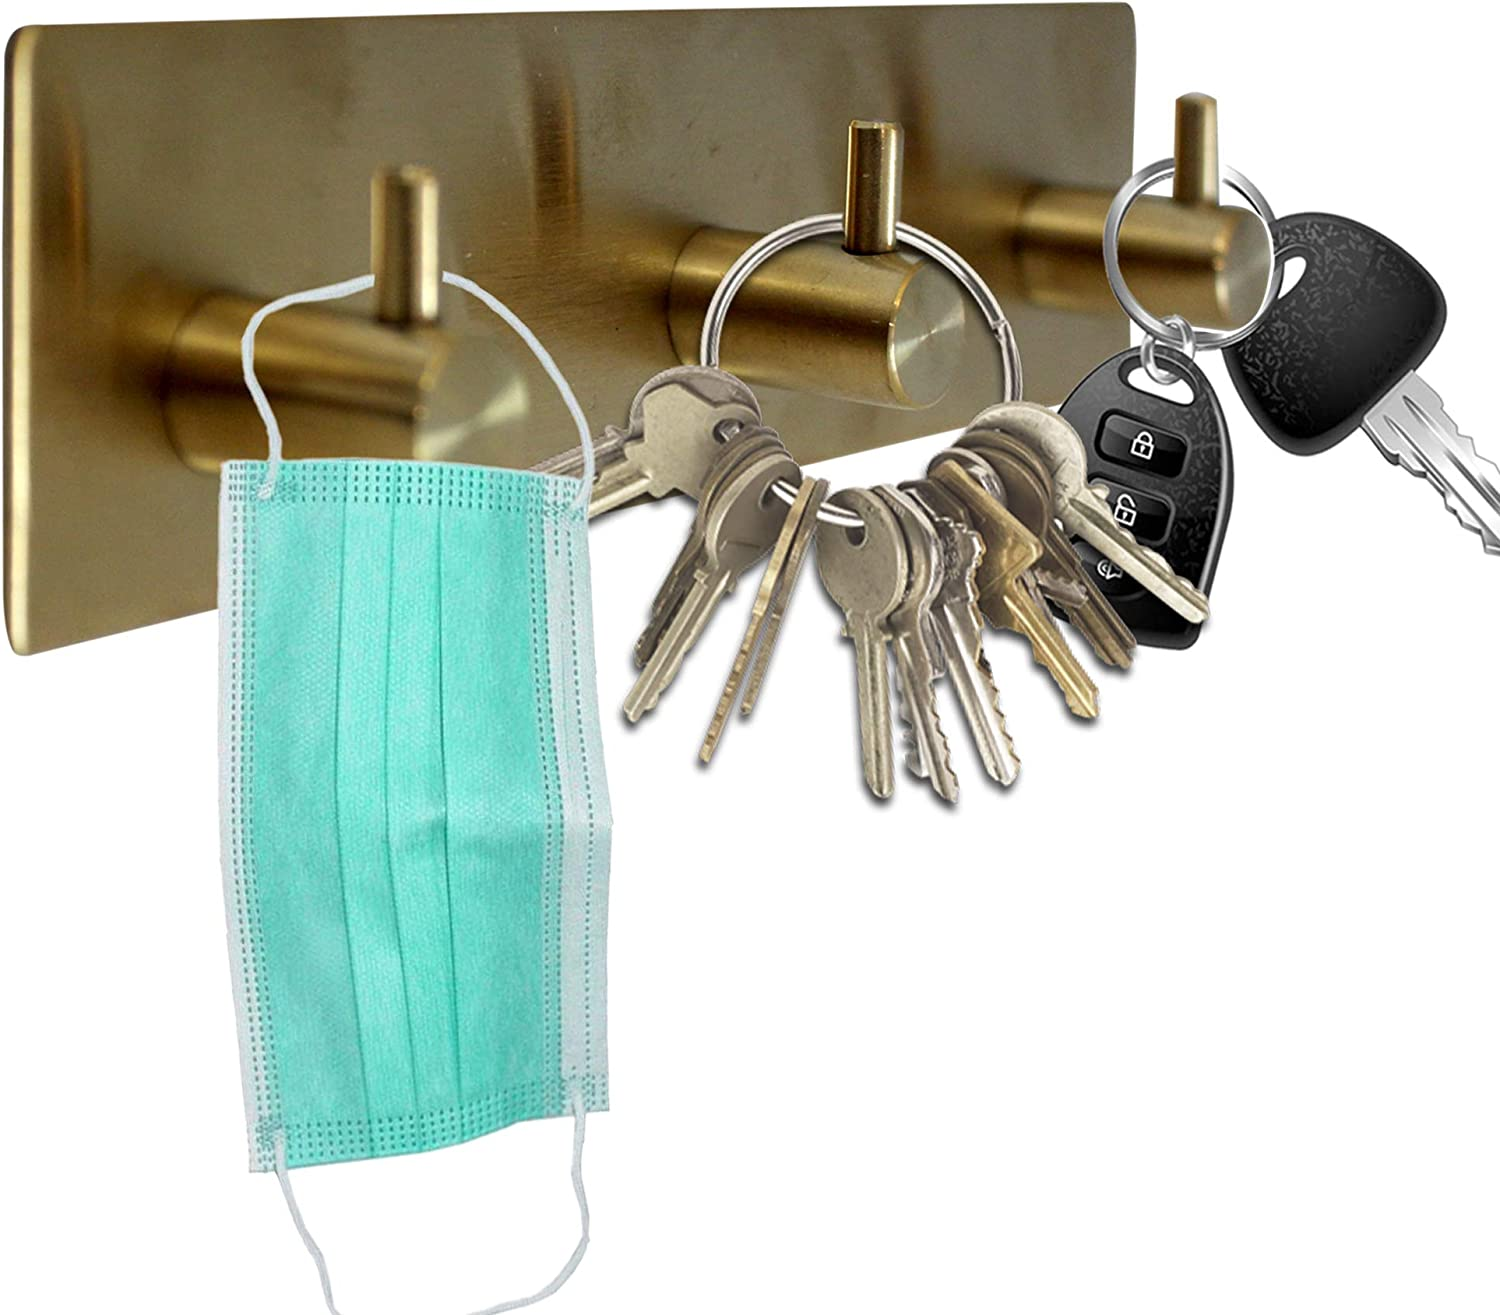 Hivory Store Key Holder for Wall